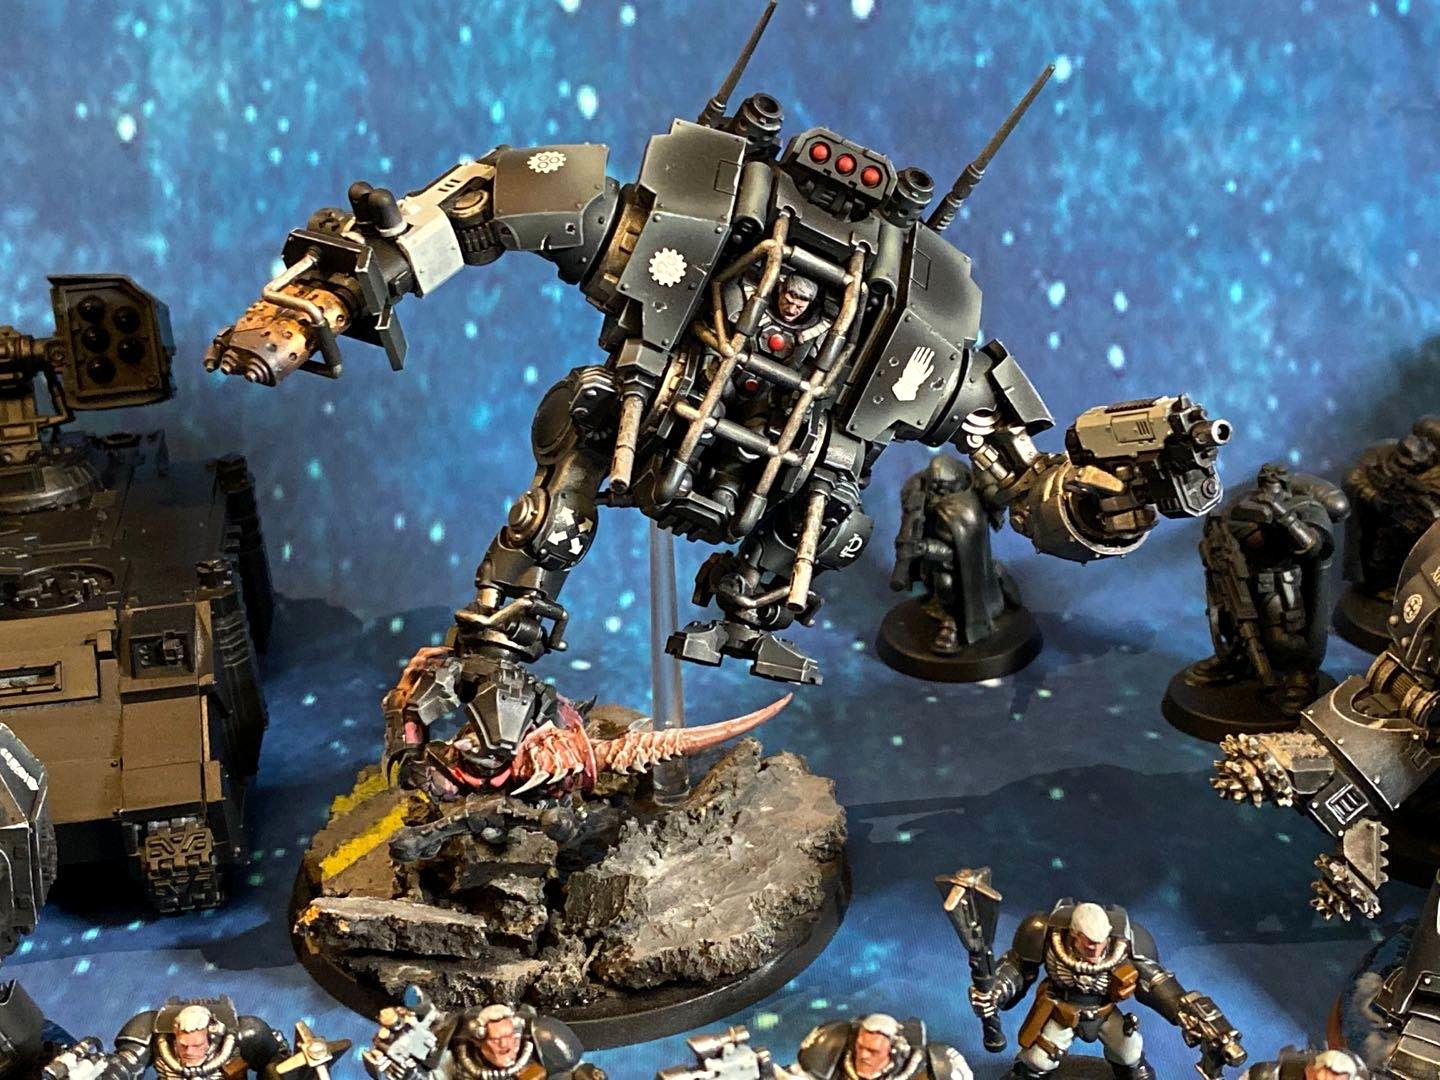 Dreadnought, Invictor, Iron Hands, Open Topped, Warhammer 40,000